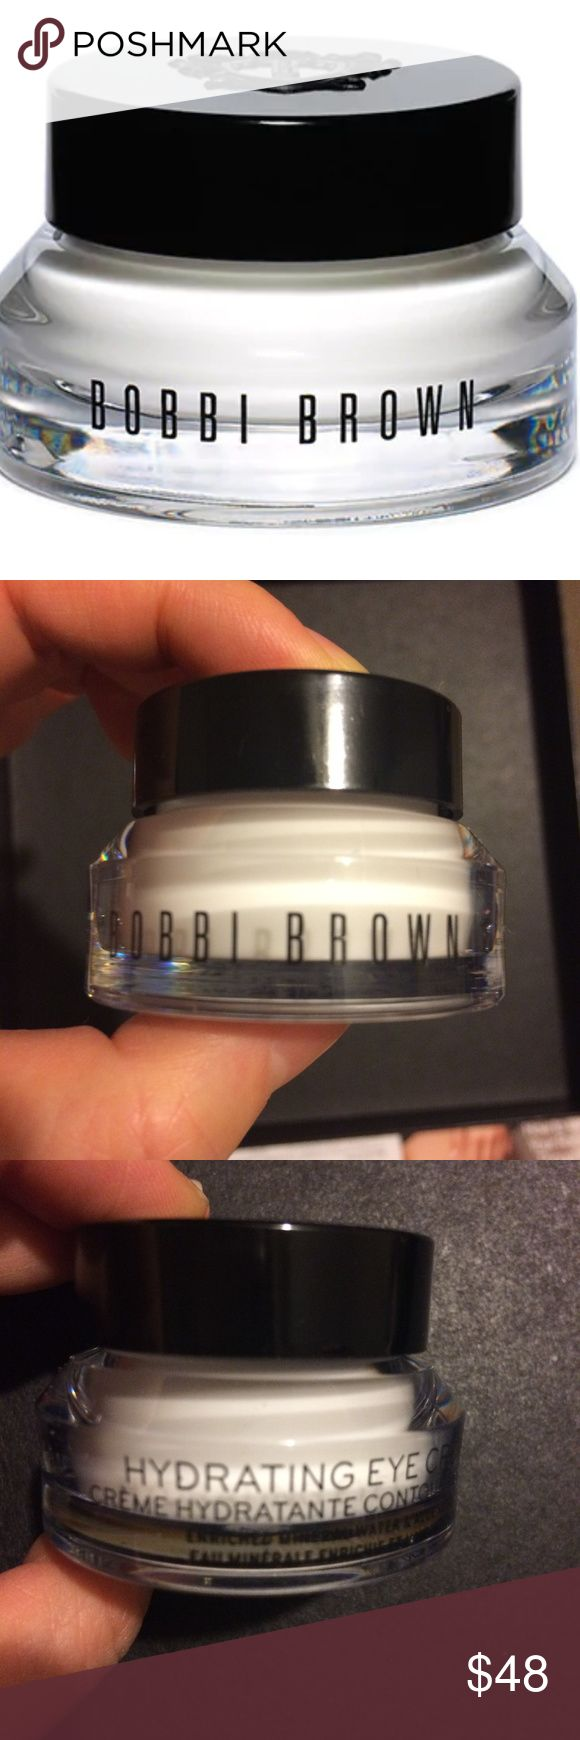 Bobbi Brown Hydrating Eye Cream A quick-absorbing eye cream with moisturizers that melt onto the skin. This cult-favorite cream leaves the eye area soft, smooth, and refreshed for up to 24 hours.  New without tag! Bobbi Brown Makeup